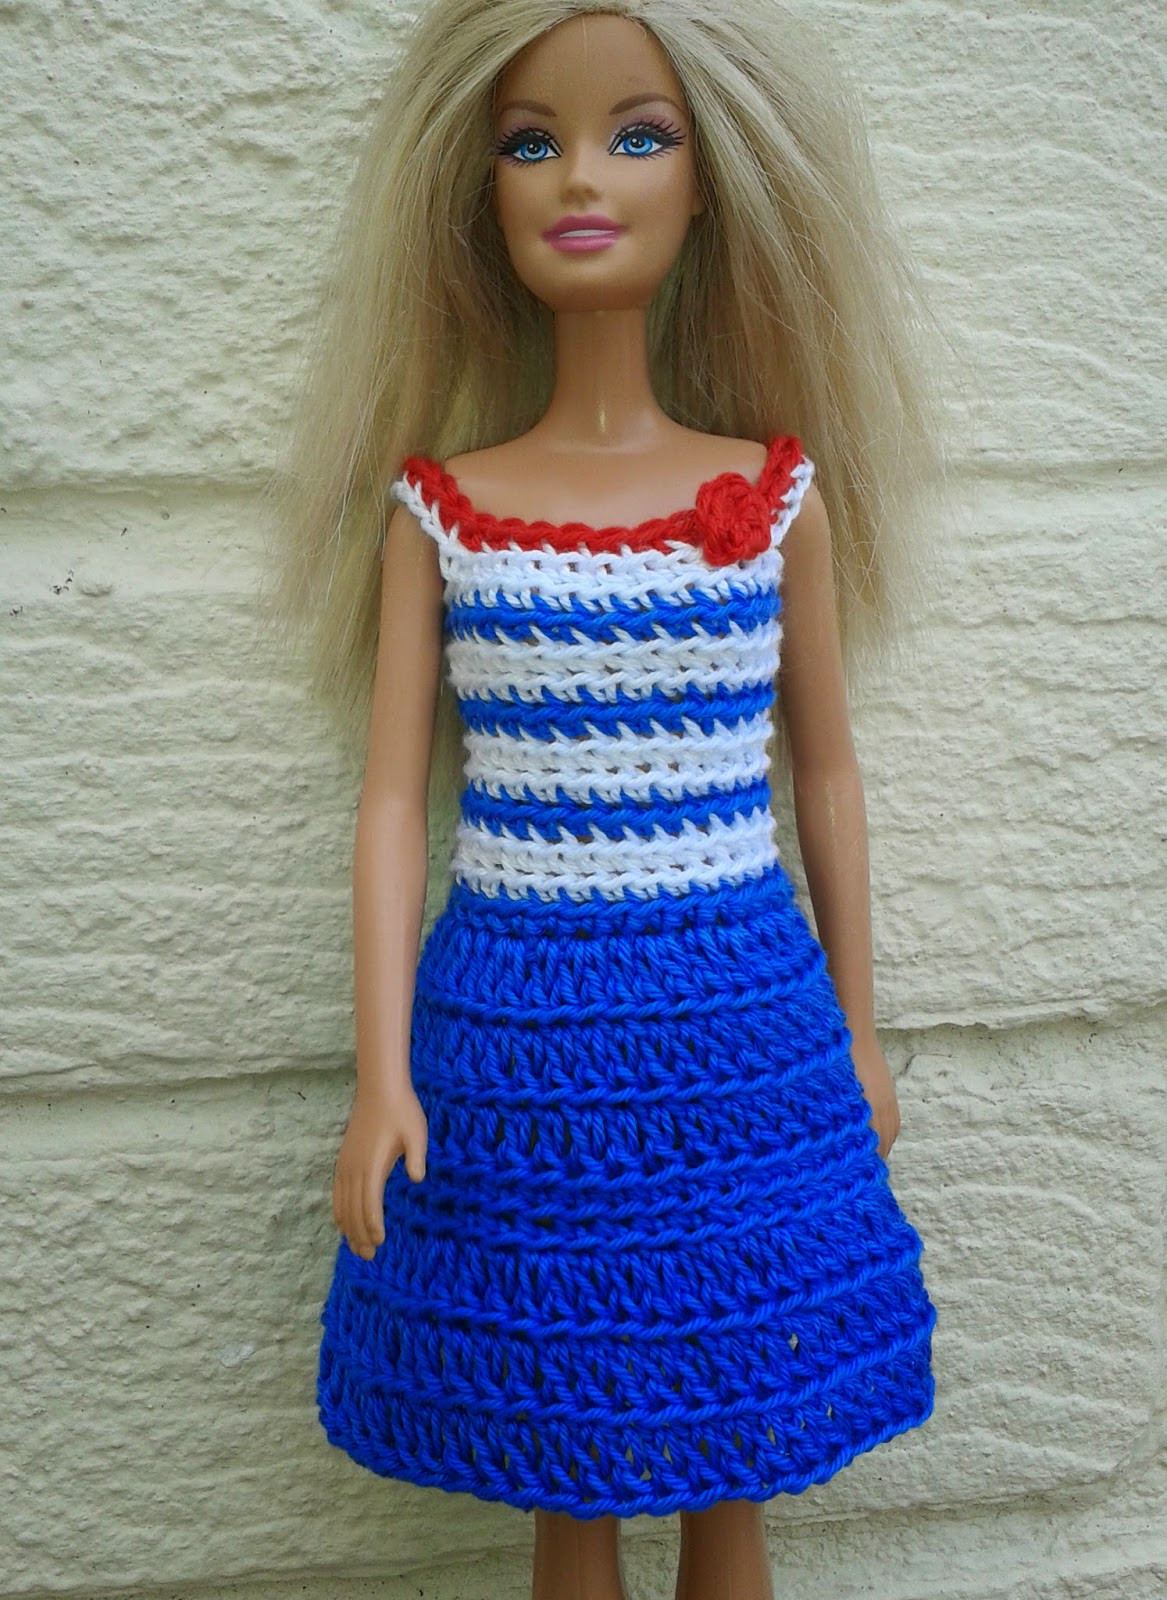 Crochet Barbie Dress Best Of Linmary Knits Barbie Crochet Nautical Dress Of Amazing 46 Pictures Crochet Barbie Dress